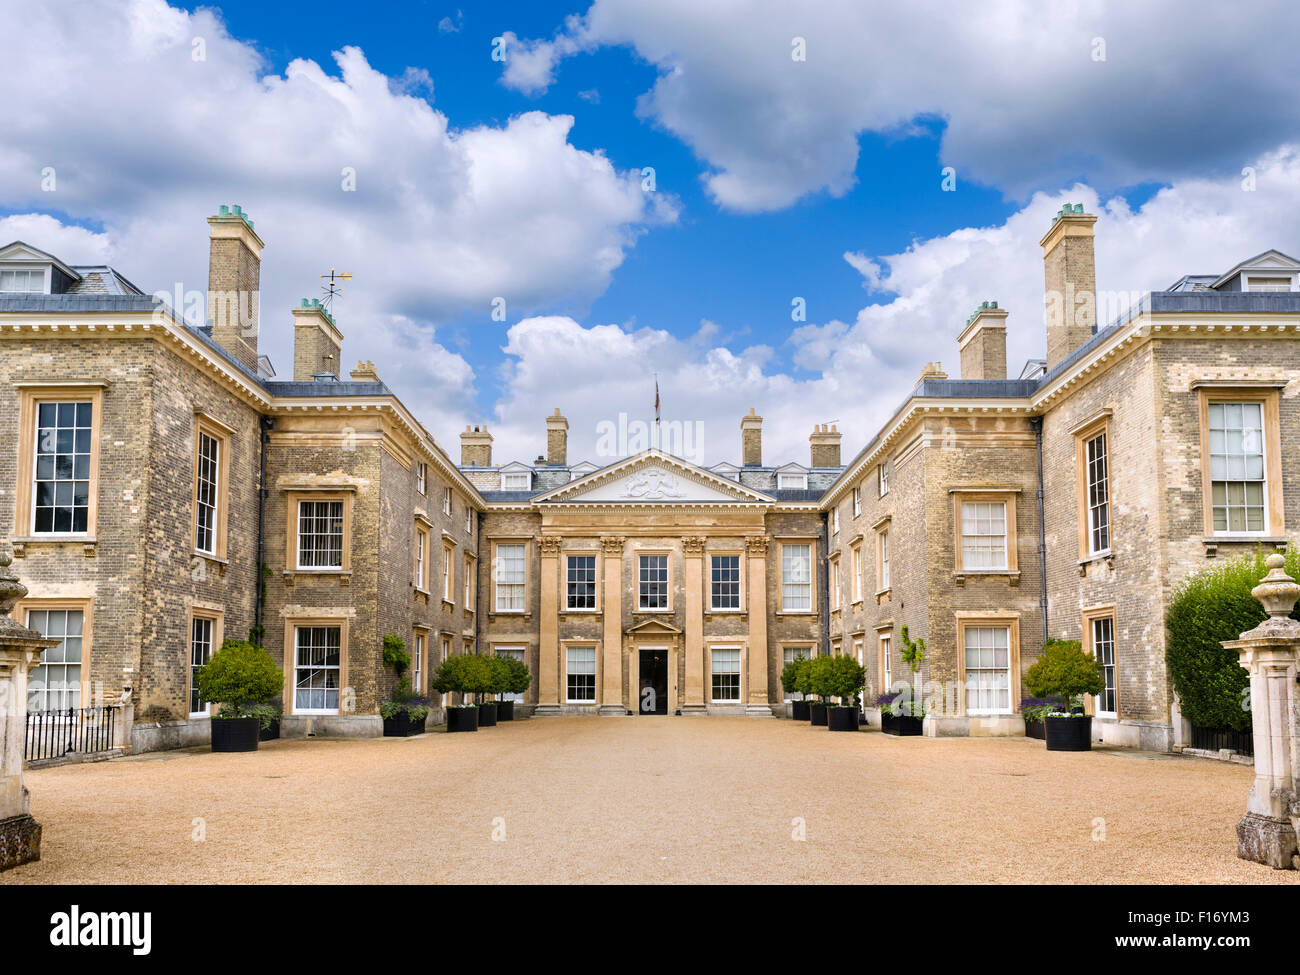 The front of Althorp house, seat of Earl Spencer and childhood home of Princess Diana, Northamptonshire, England, - Stock Image